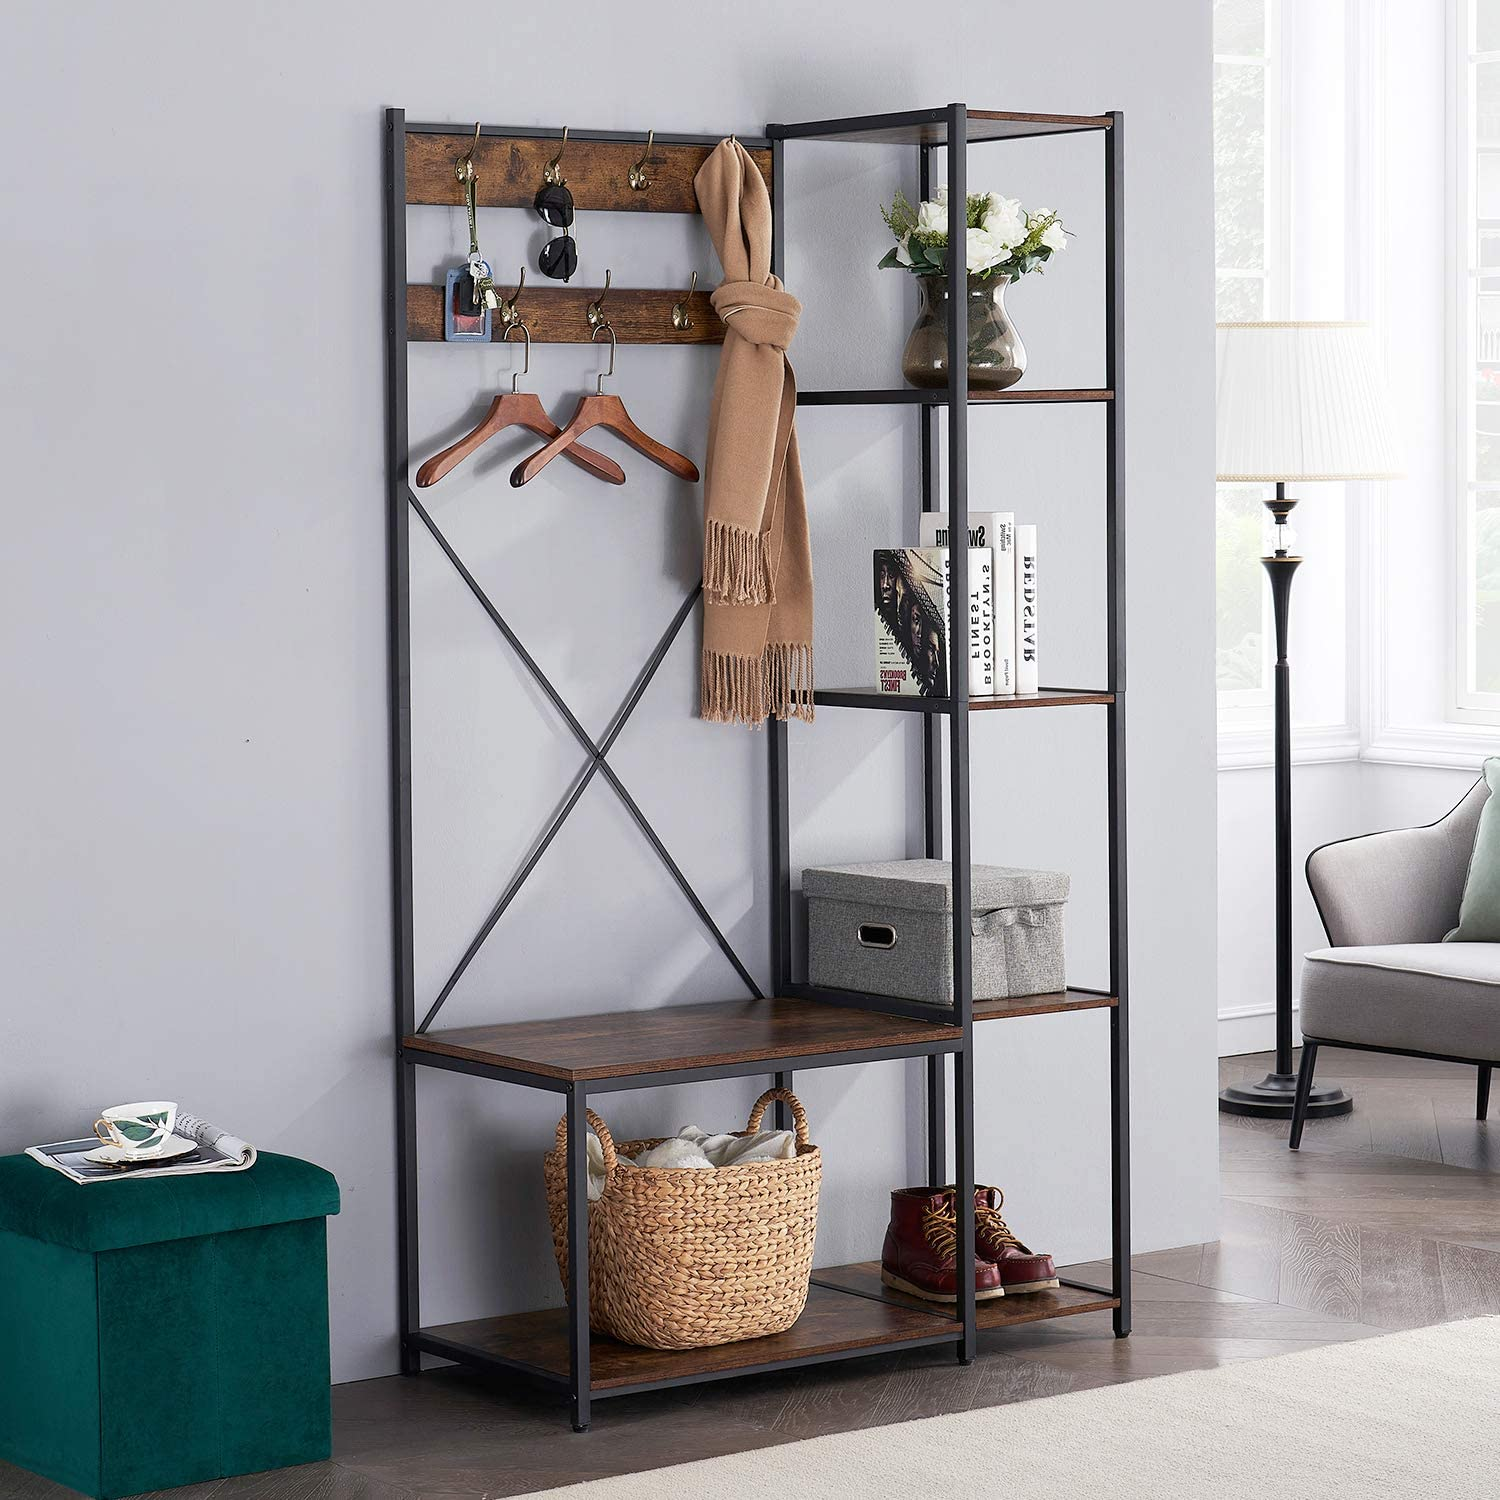 VECELO Coat Rack Bench Hall Tree with 7 Hooks Entryway Storage 4 Shelves and 1-Tier Shoe Shelf,Wood Look Accent Furniture Metal Frame,4 in 1 Design, Easy Assembly,Brown